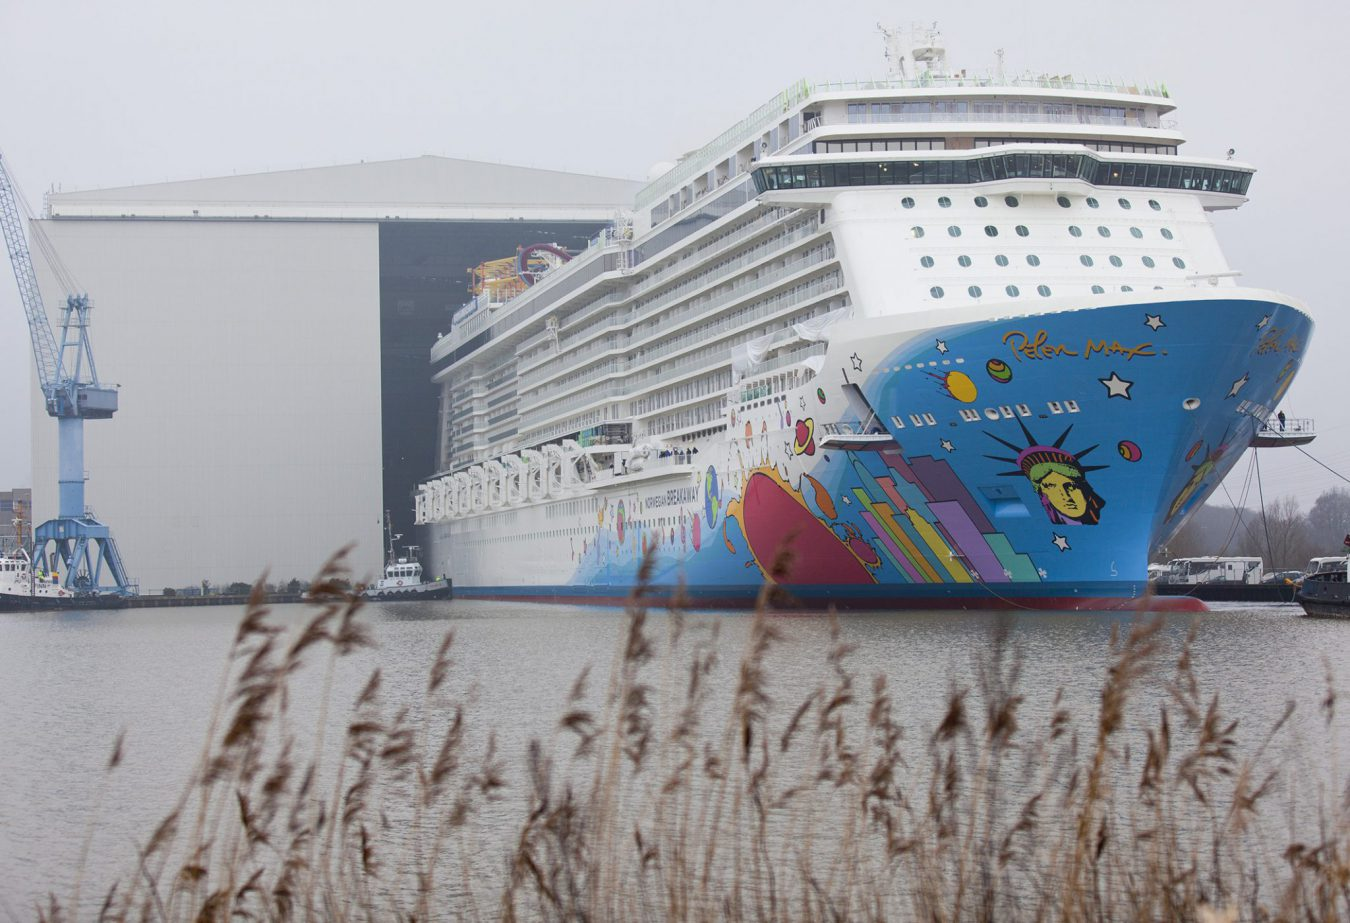 Norwegian Breakaway The Largest Ship Ever Constructed In Germany Floats Out